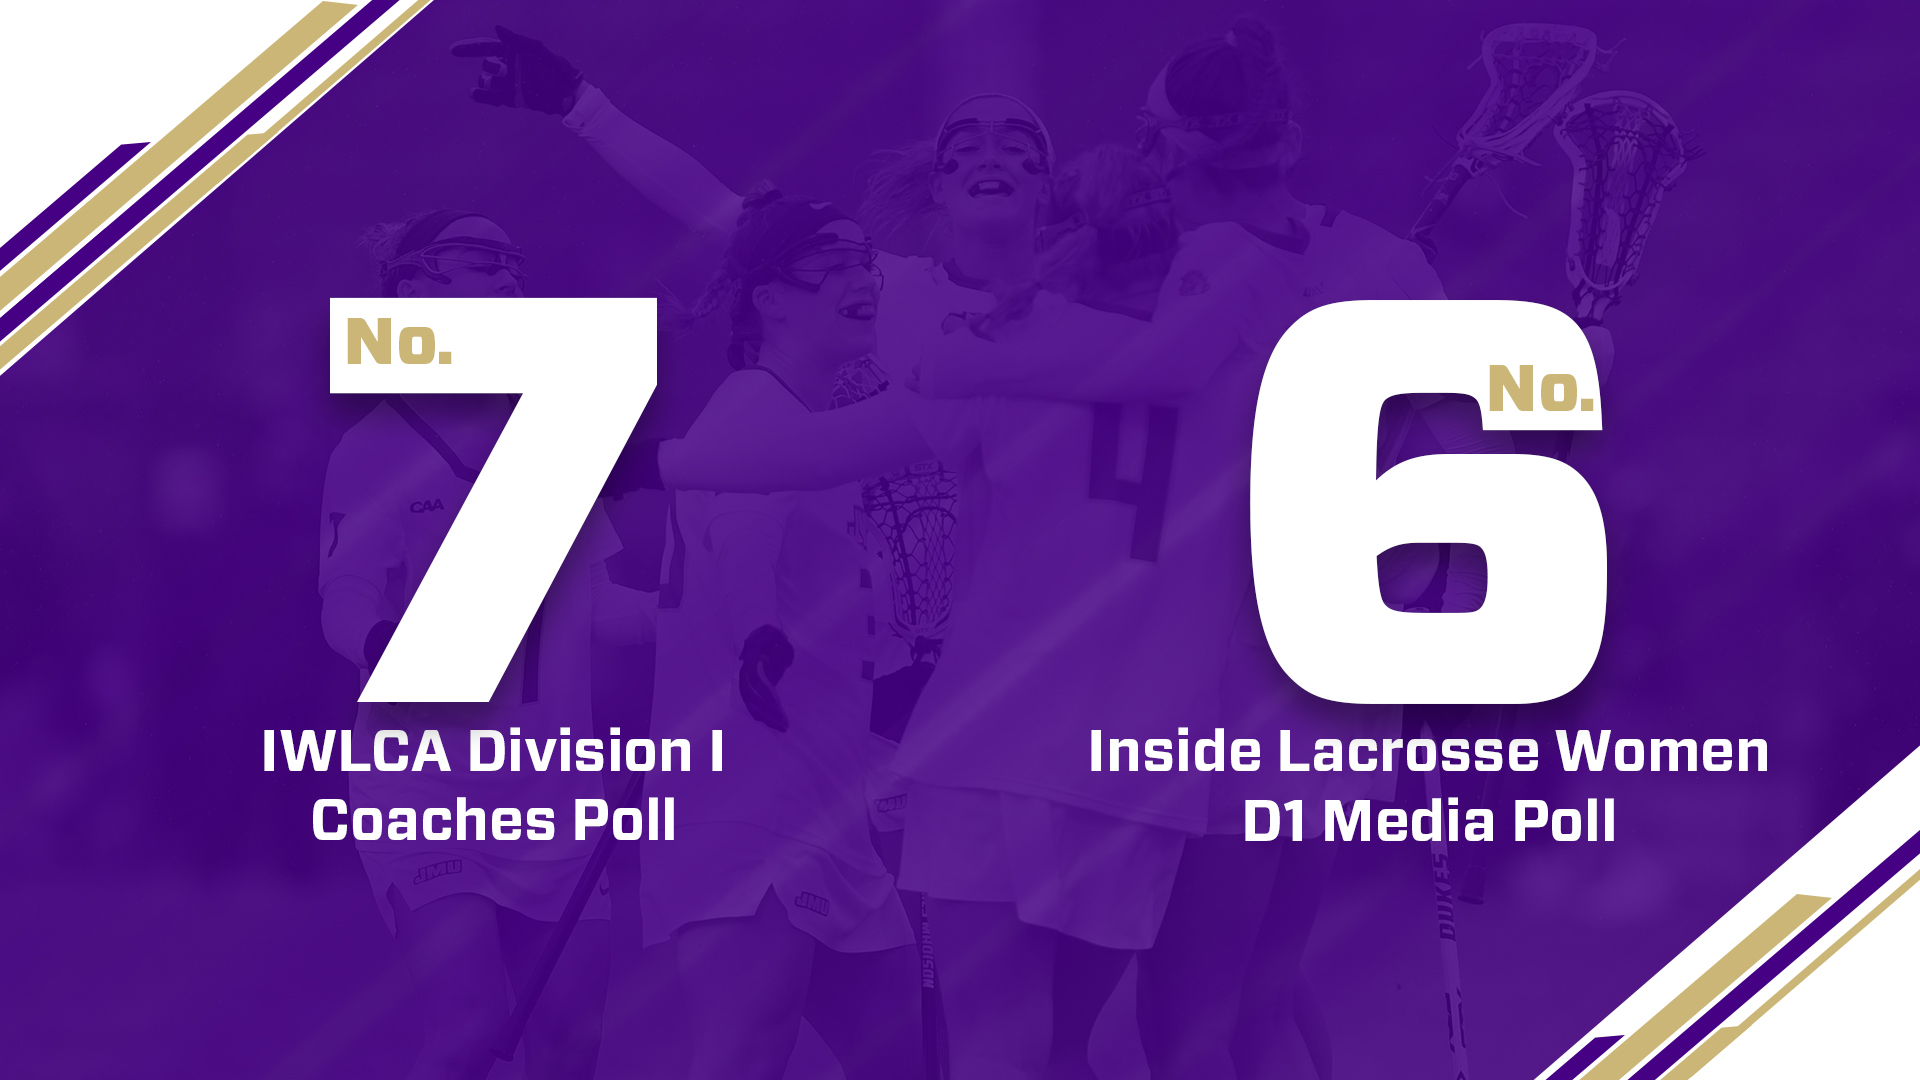 Lacrosse: Dukes Rank Seventh in Coaches Poll, Move Up to Sixth in Media Poll